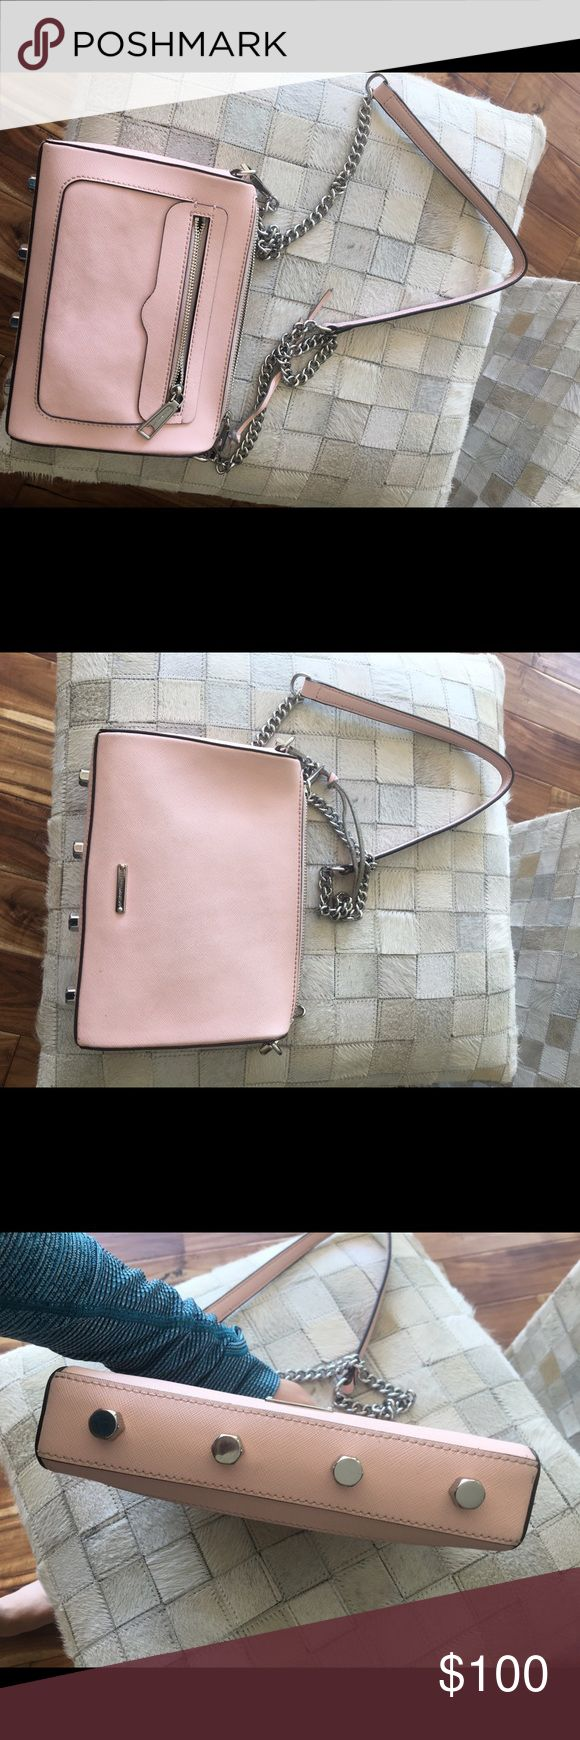 Rebecca minkoff purse Pink and sliver with tassel on top zipper ! Rebecca Minkoff Bags Crossbody Bags